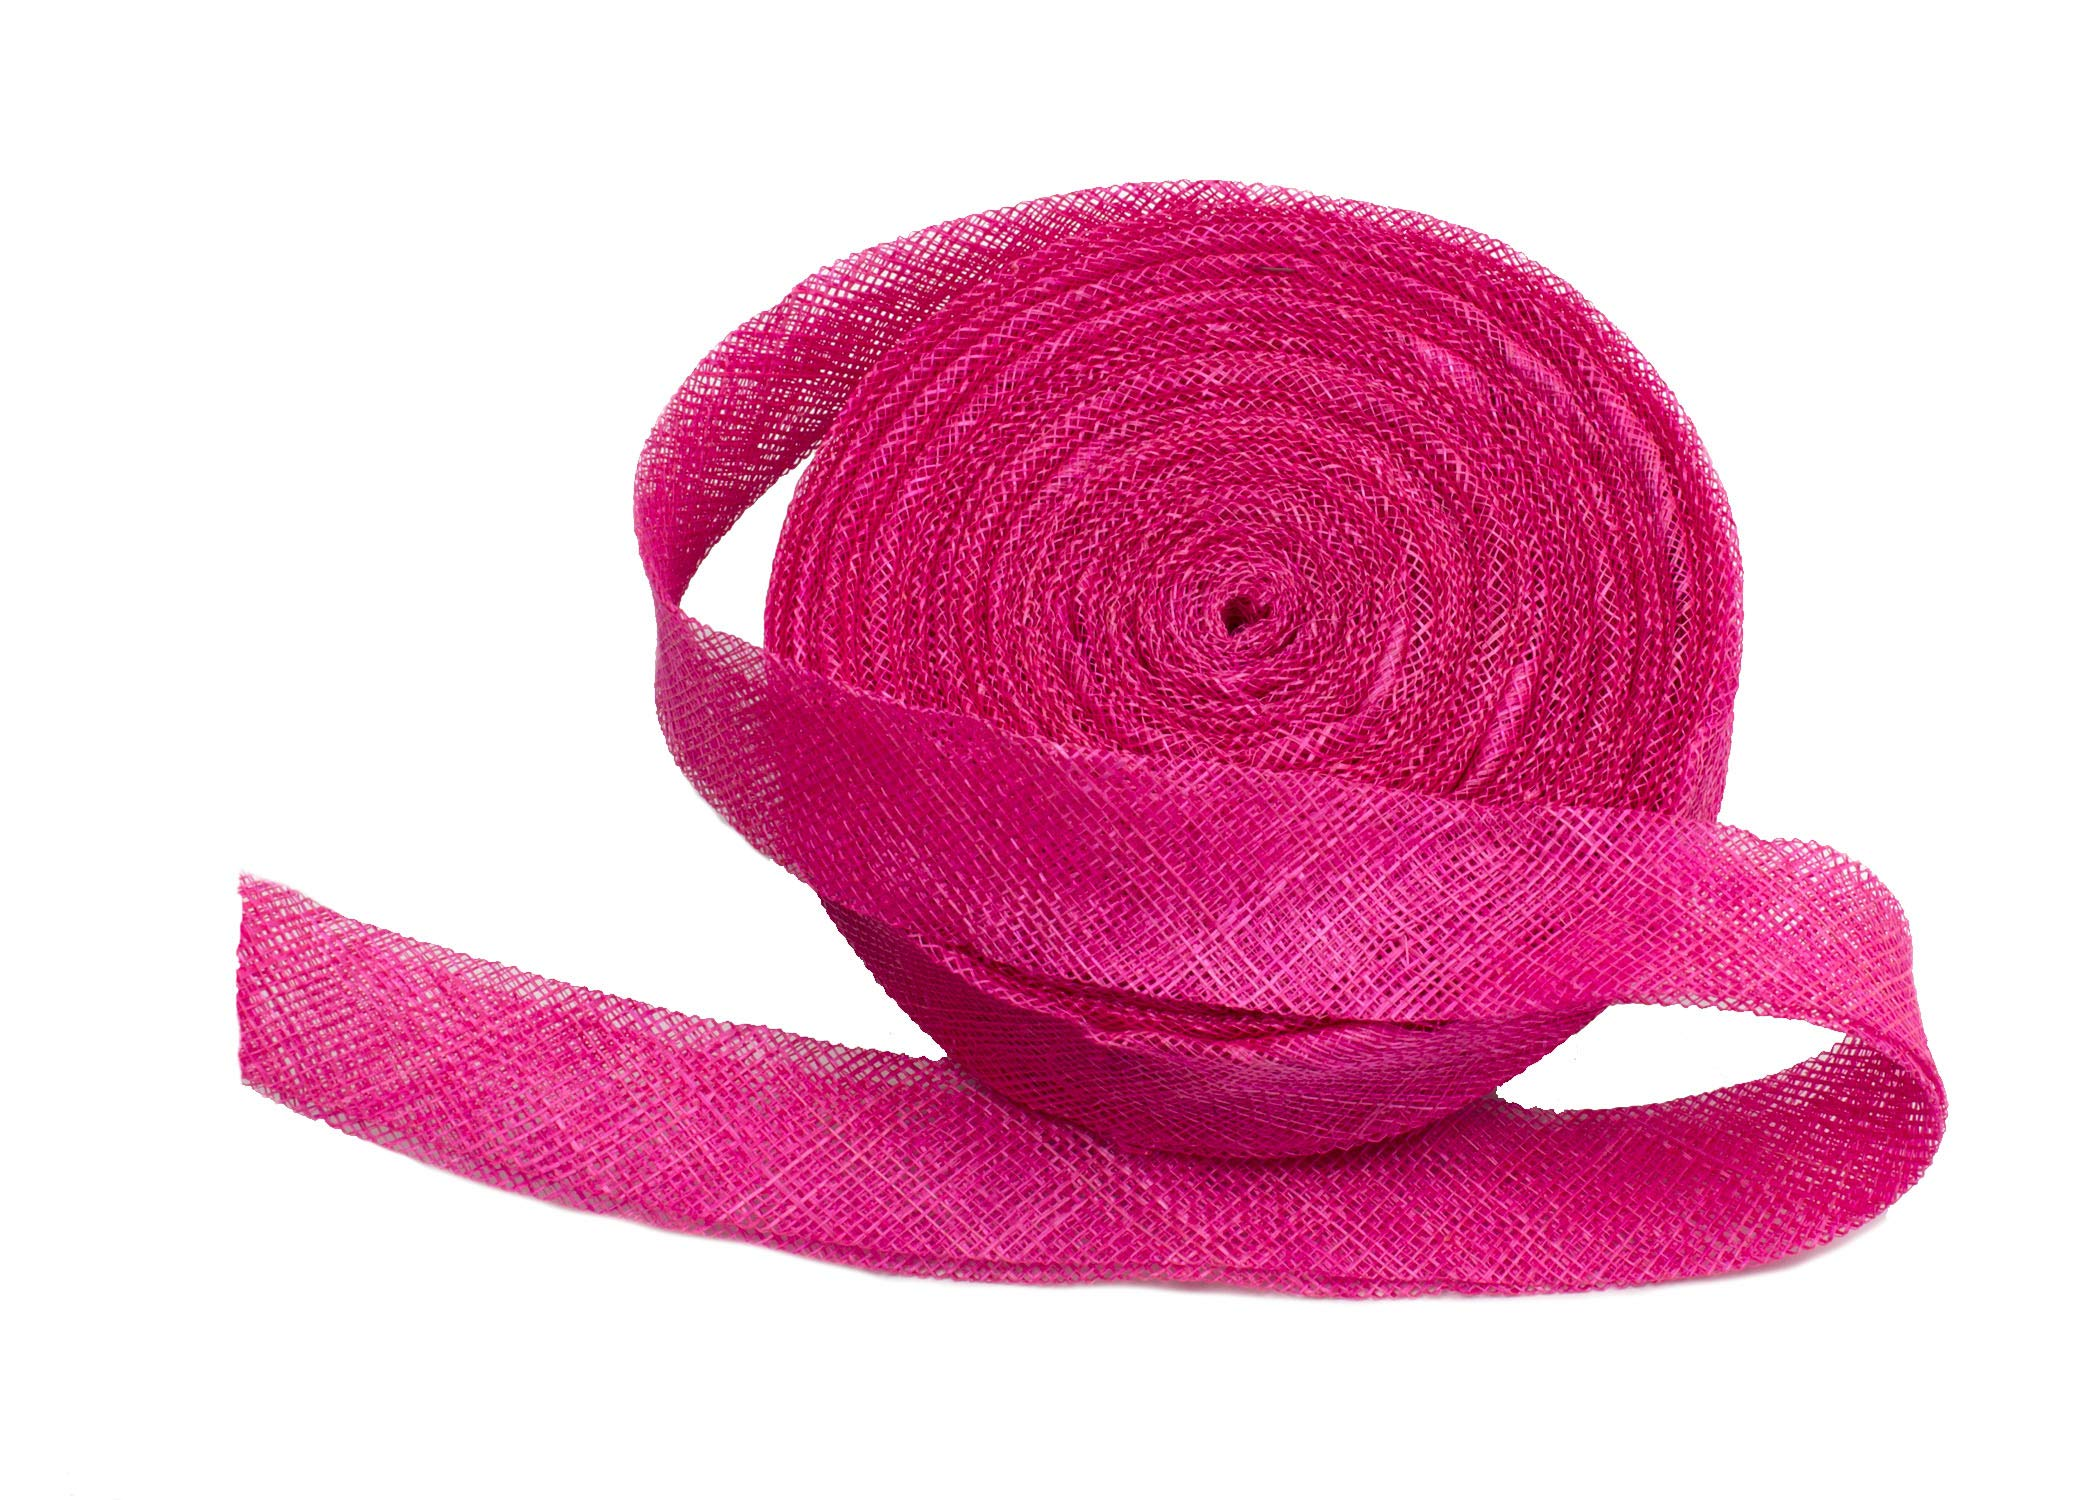 Sinamay Bias Binding Tape for Millinery 3 cm Wide - Hot Pink - 10 Meter Roll by Humboldt Haberdashery